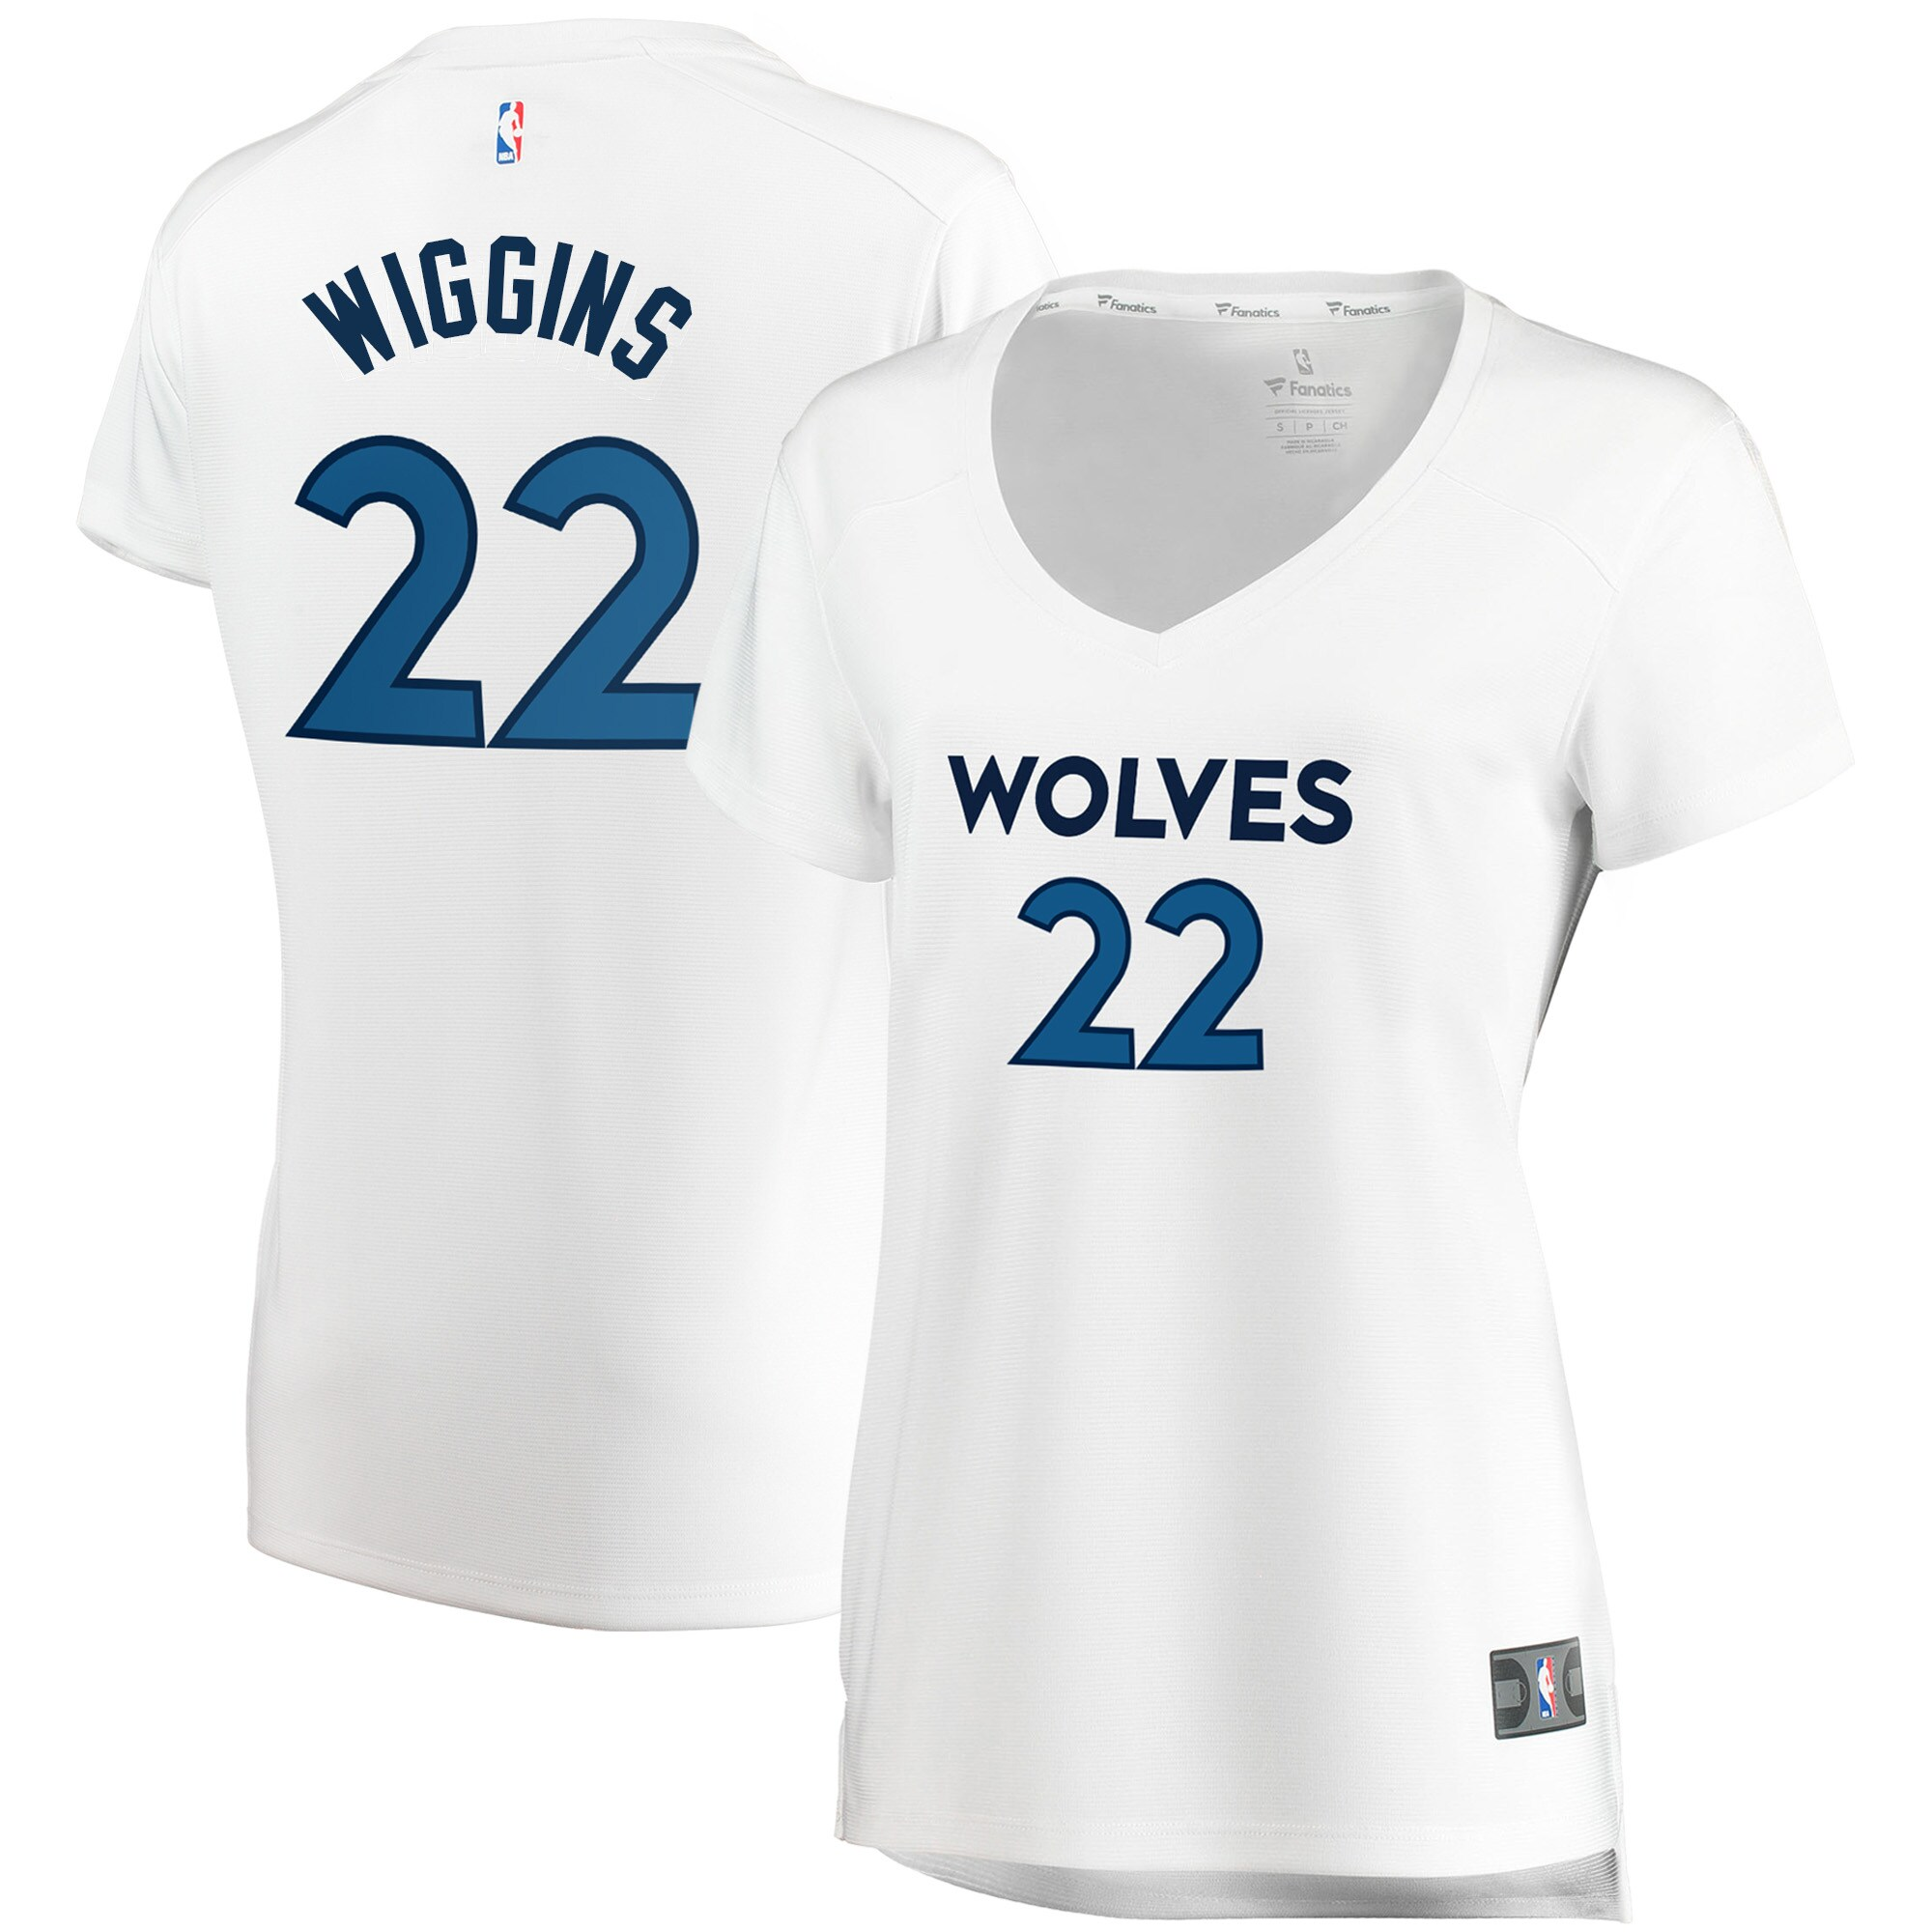 Andrew Wiggins Minnesota Timberwolves Fanatics Branded Women's Fast Break Replica Jersey White - Association Edition